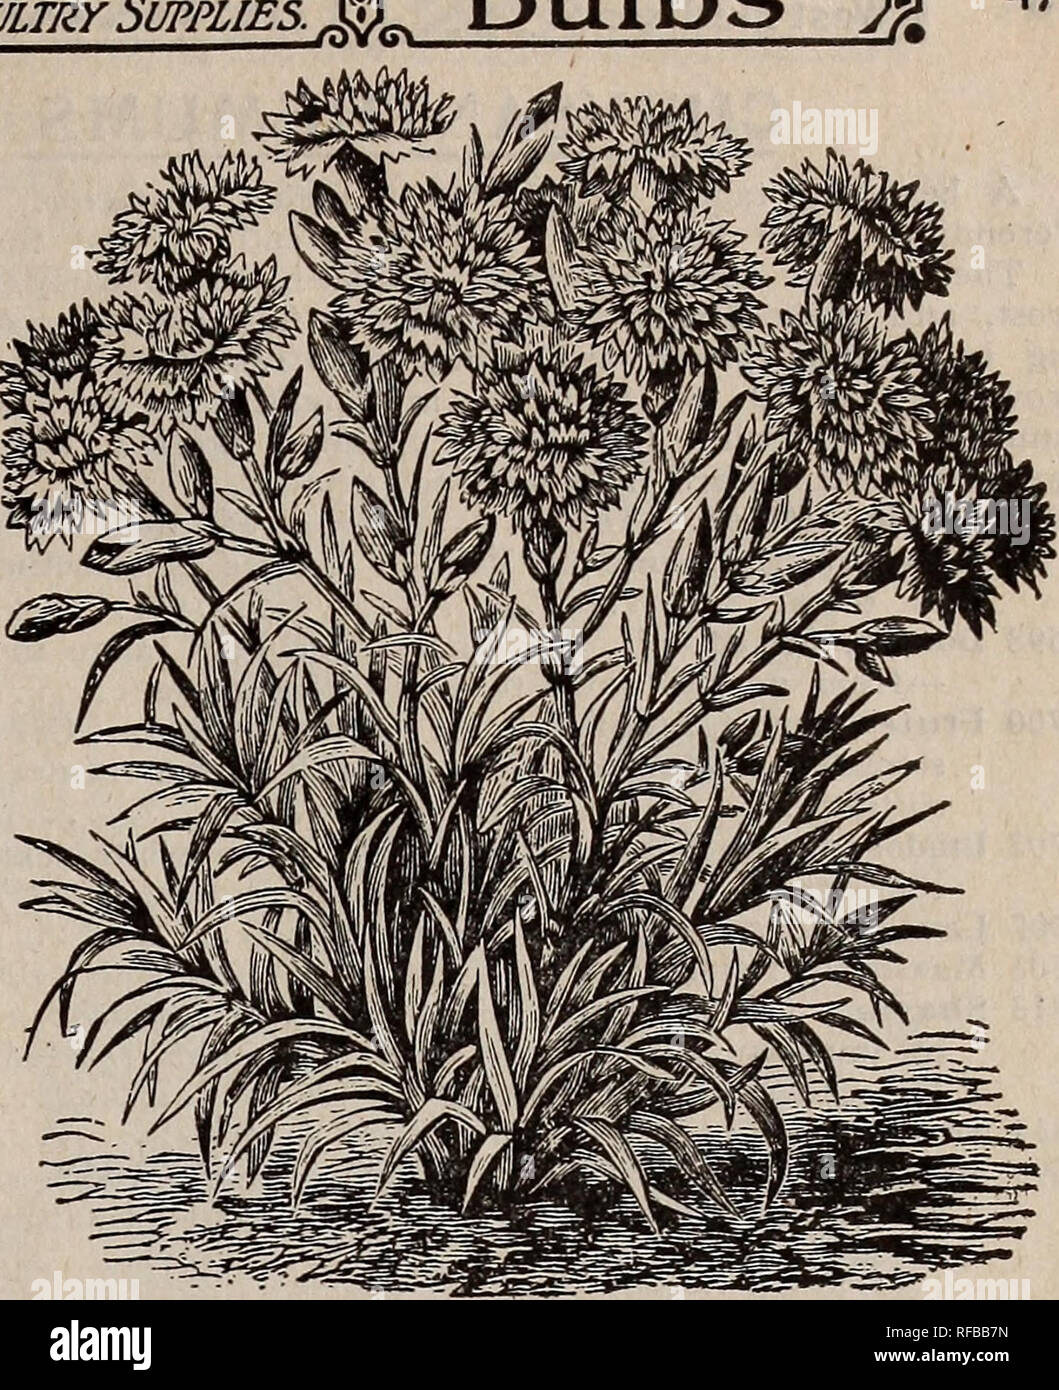 """. Catalogue 1913 : seeds, bulbs, shrubs. Seeds Catalogs; Vegetables Seeds Catalogs; Flowers Seeds Catalogs; Fruit Seeds Catalogs; Nurseries (Horticulture) Catalogs. MARGARET CARNATI ON CELOSIA, """"castle GOULD ' CELOSIA PLUMOSA (Plumed Cockscomb) Branching plants 3J^ feet high, bearing large, conical, plumed heads of either golden yellow, fiery scarlet, purple, salmon, blood-red, etc. Good for cut flowers. Annuals, growing easily and quickly from seed. 2633 Pride of Castle Gould. This forms pyramidal, branching plants, bearing large, conical, plumed heads in various colors. Mixed 50 2655 Tr Stock Photo"""